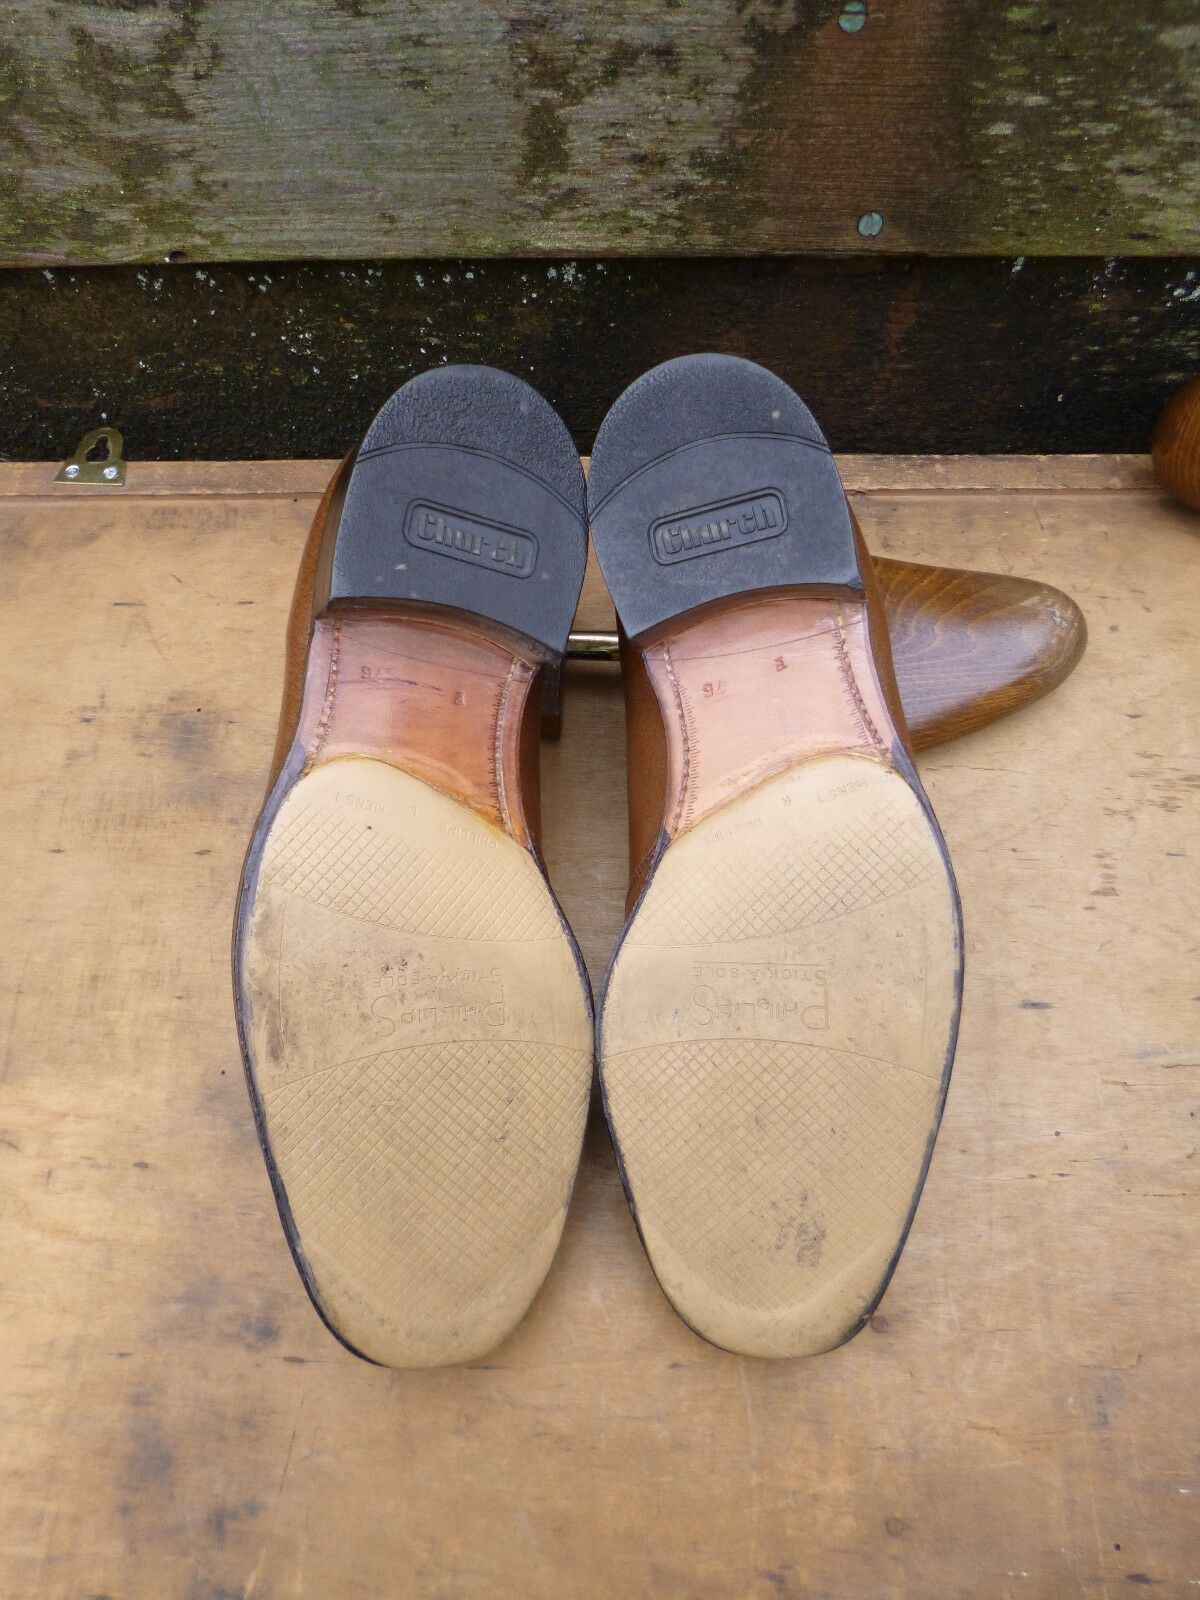 CHURCH VINTAGE LOAFERS – BROWN BROWN –  – UK 7.5 – SUPERB CONDITION 6aaaf1